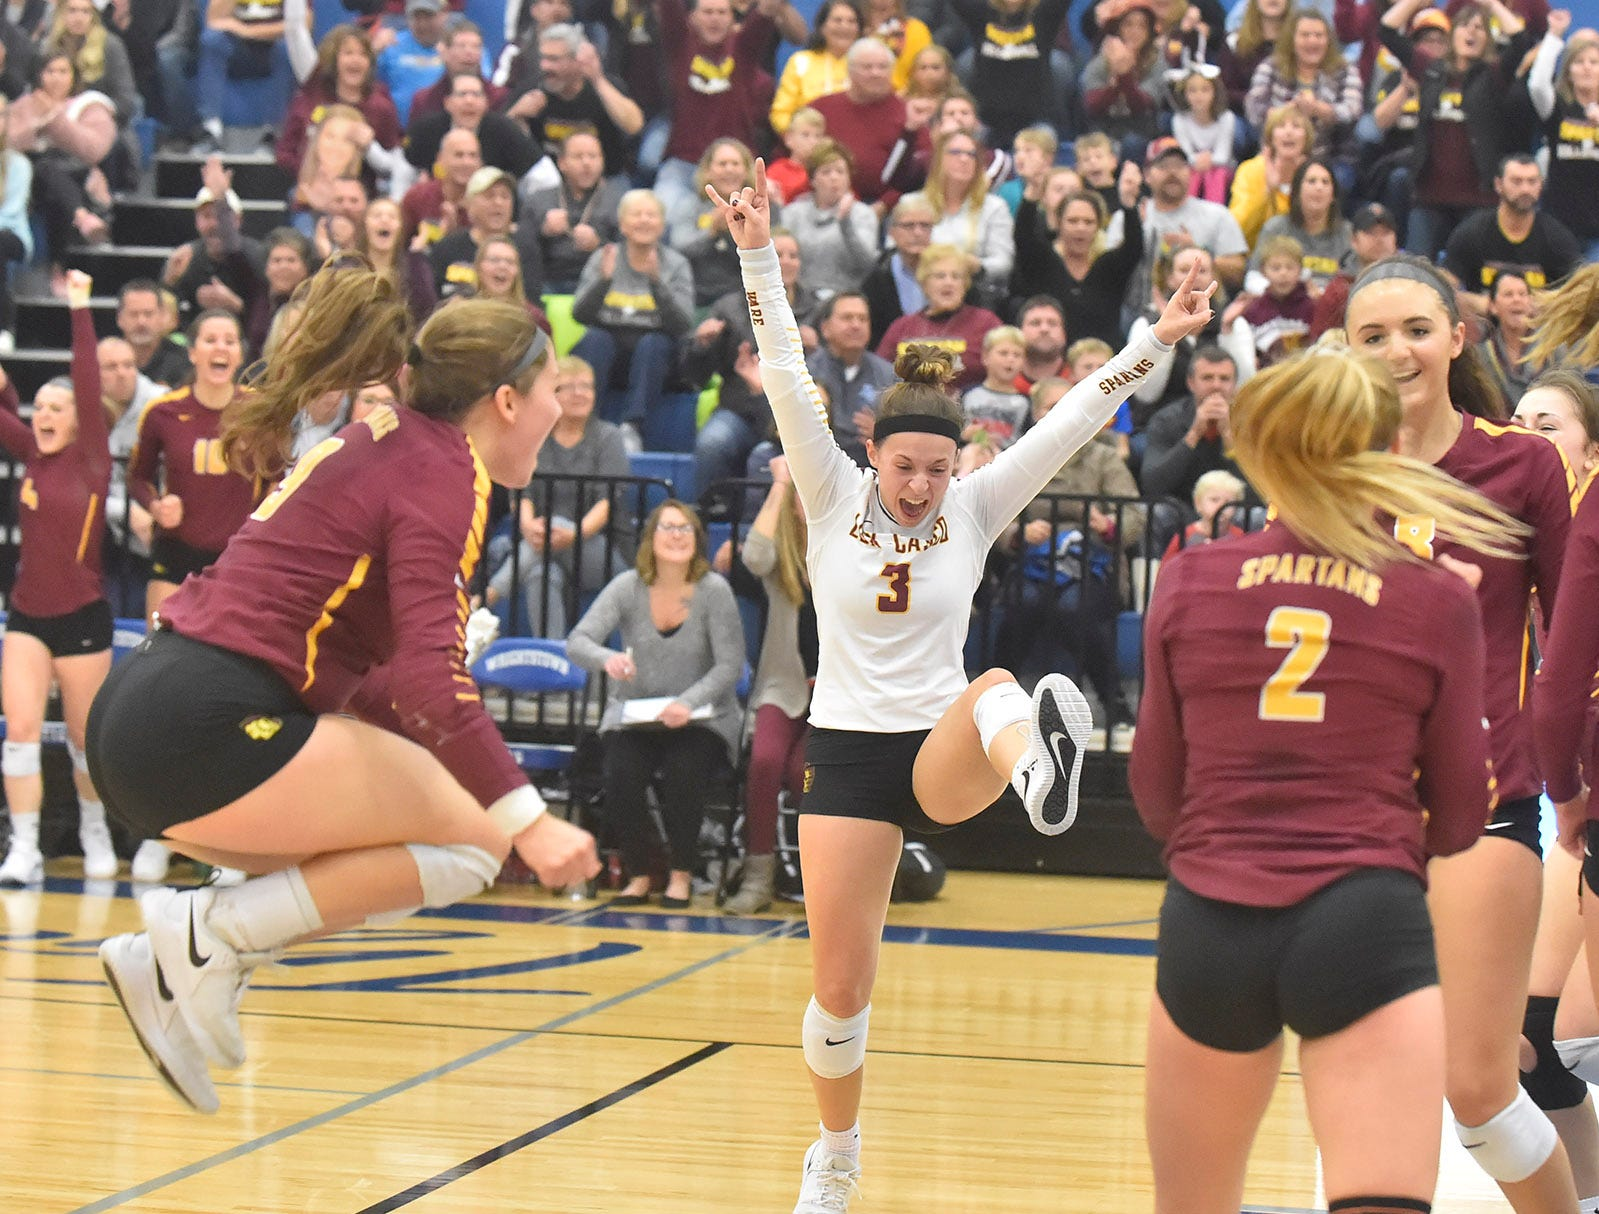 AManda Miceli, center, and Claire Coppens, left, celebrate a point against Little Chute at the WIAA Division 2 sectional final against Little Chute on Oct. 27, 2018, in Wrightstown. Tina M. Gohr/USA TODAY NETWORK-Wisconsin